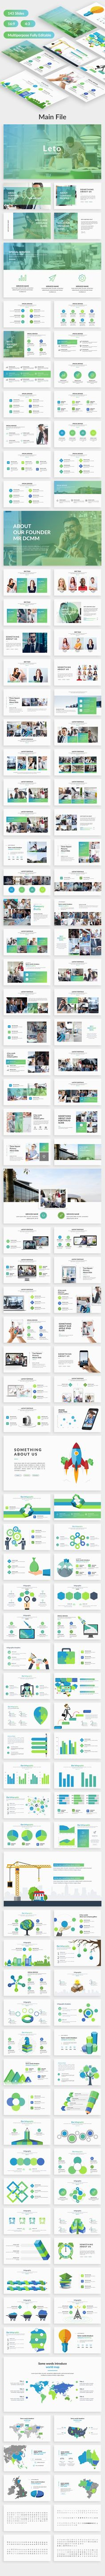 Leto Business Keynote Template - #Creative #Keynote #Templates Download here: https://graphicriver.net/item/leto-business-keynote-template/20332571?ref=alena994